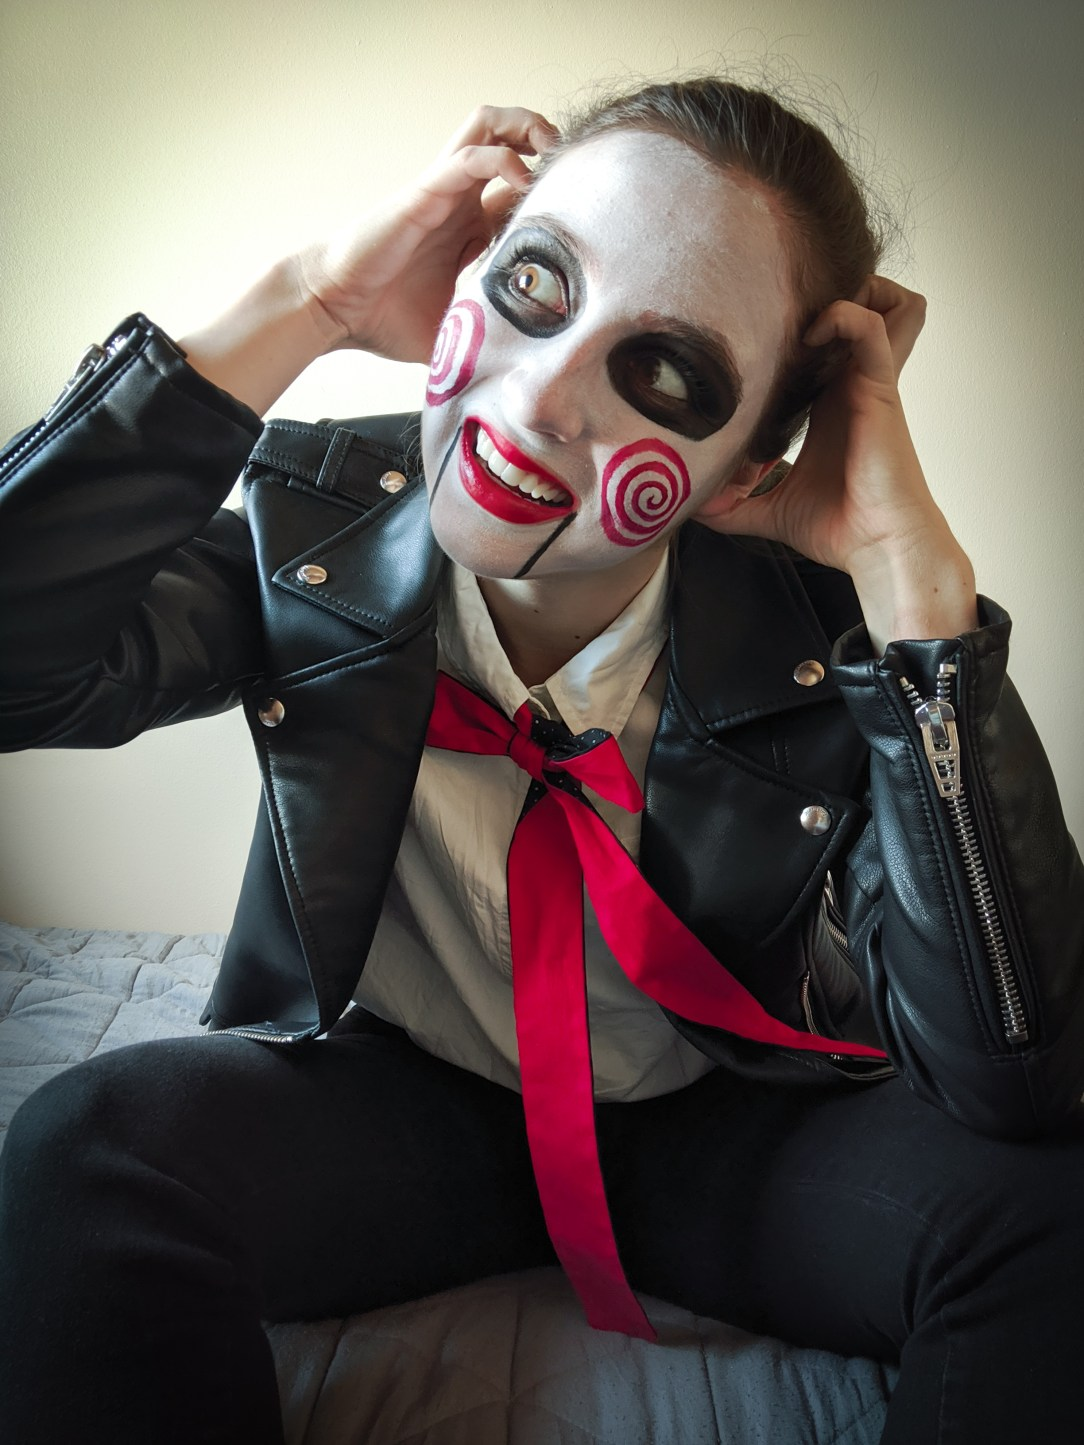 Billy the puppet, Saw costume